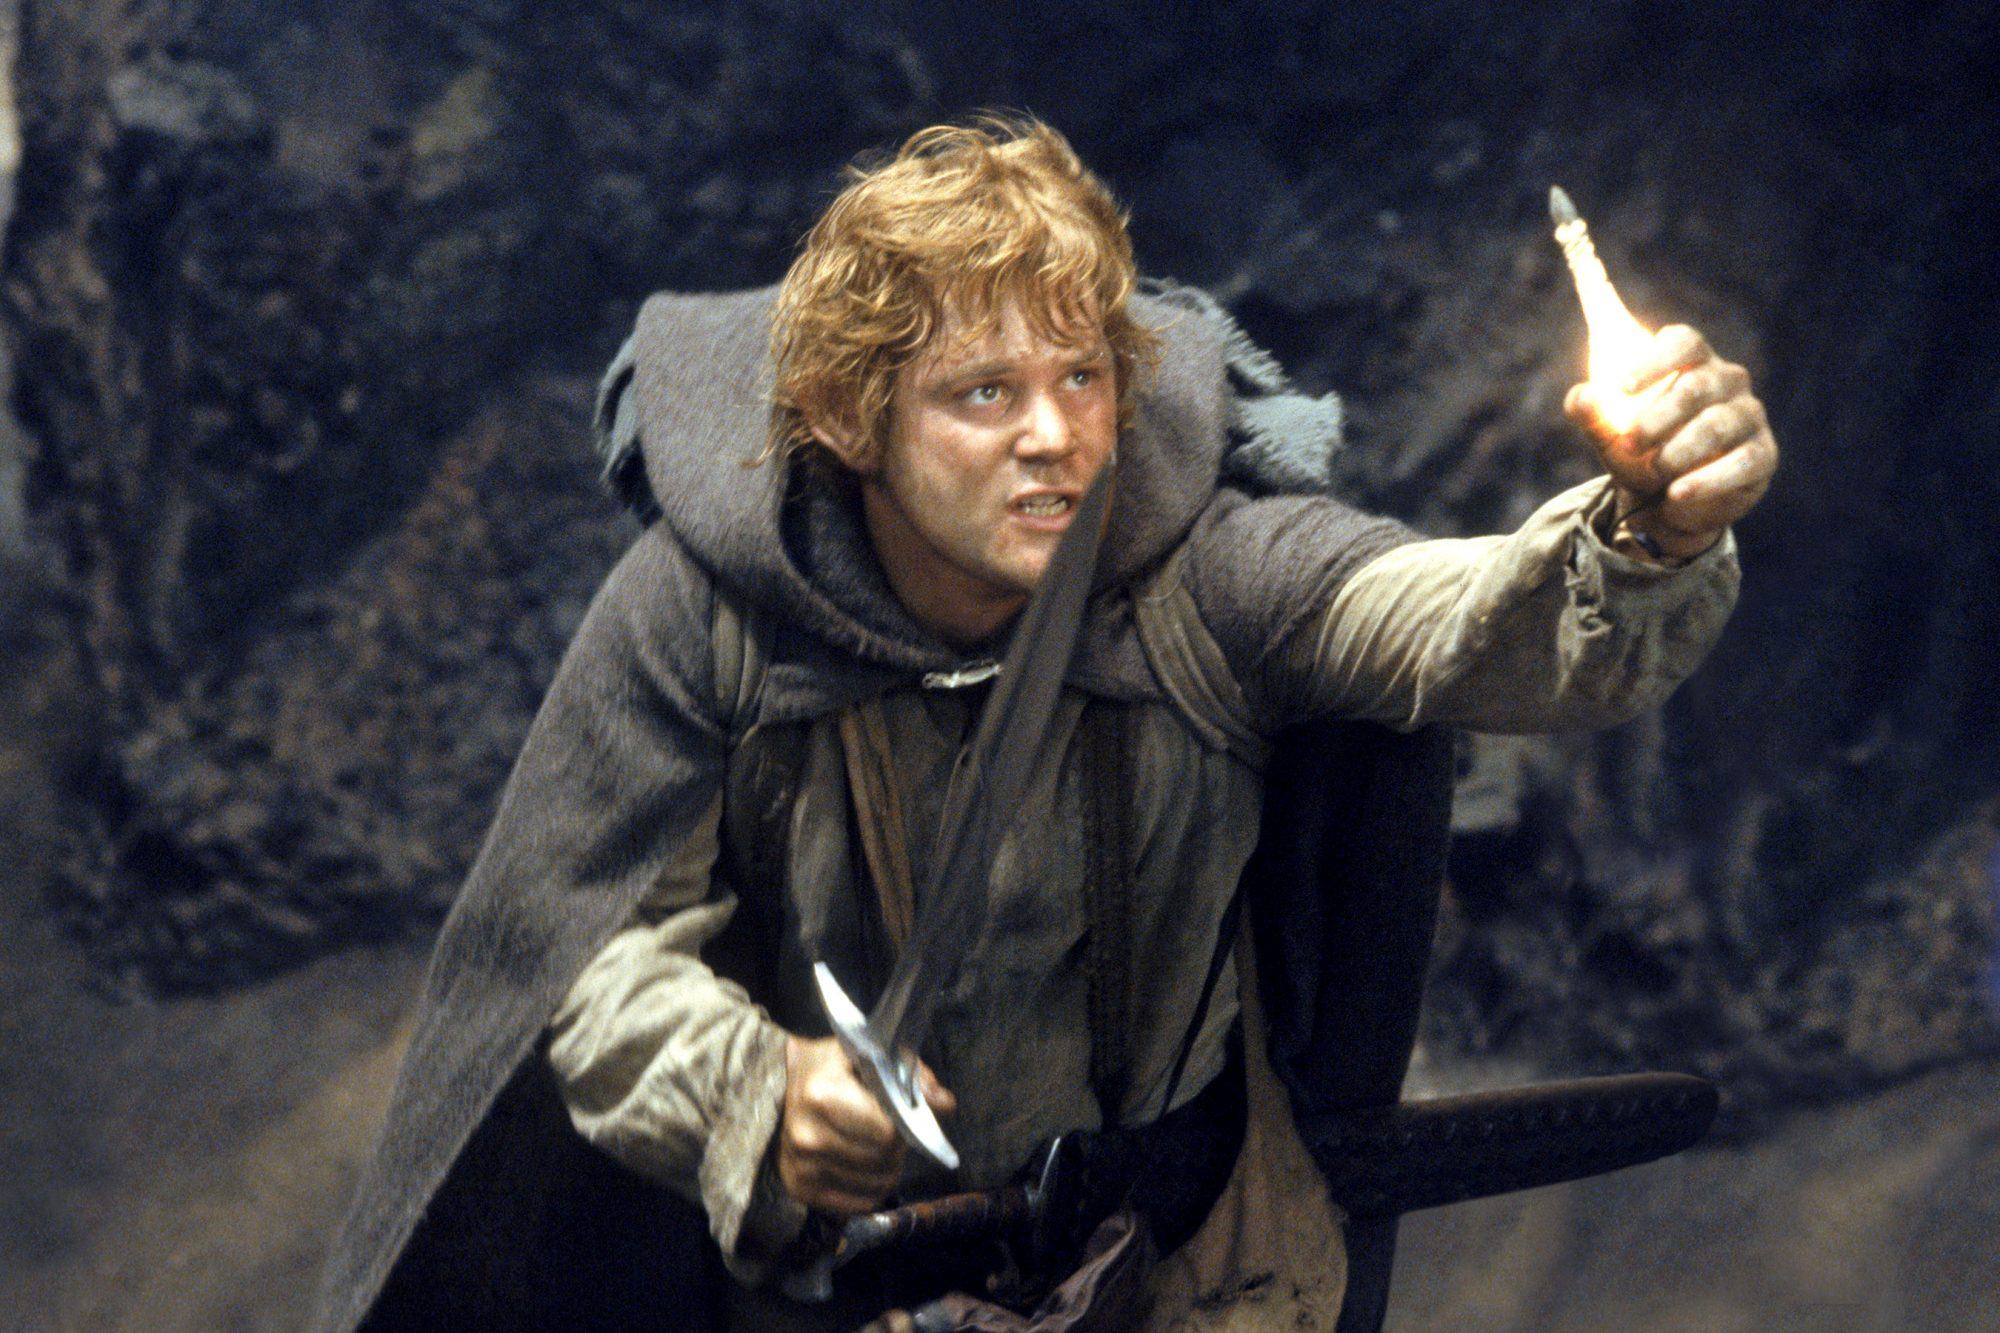 Lord of the Rings: The Return of the King (2003)Sean Astin